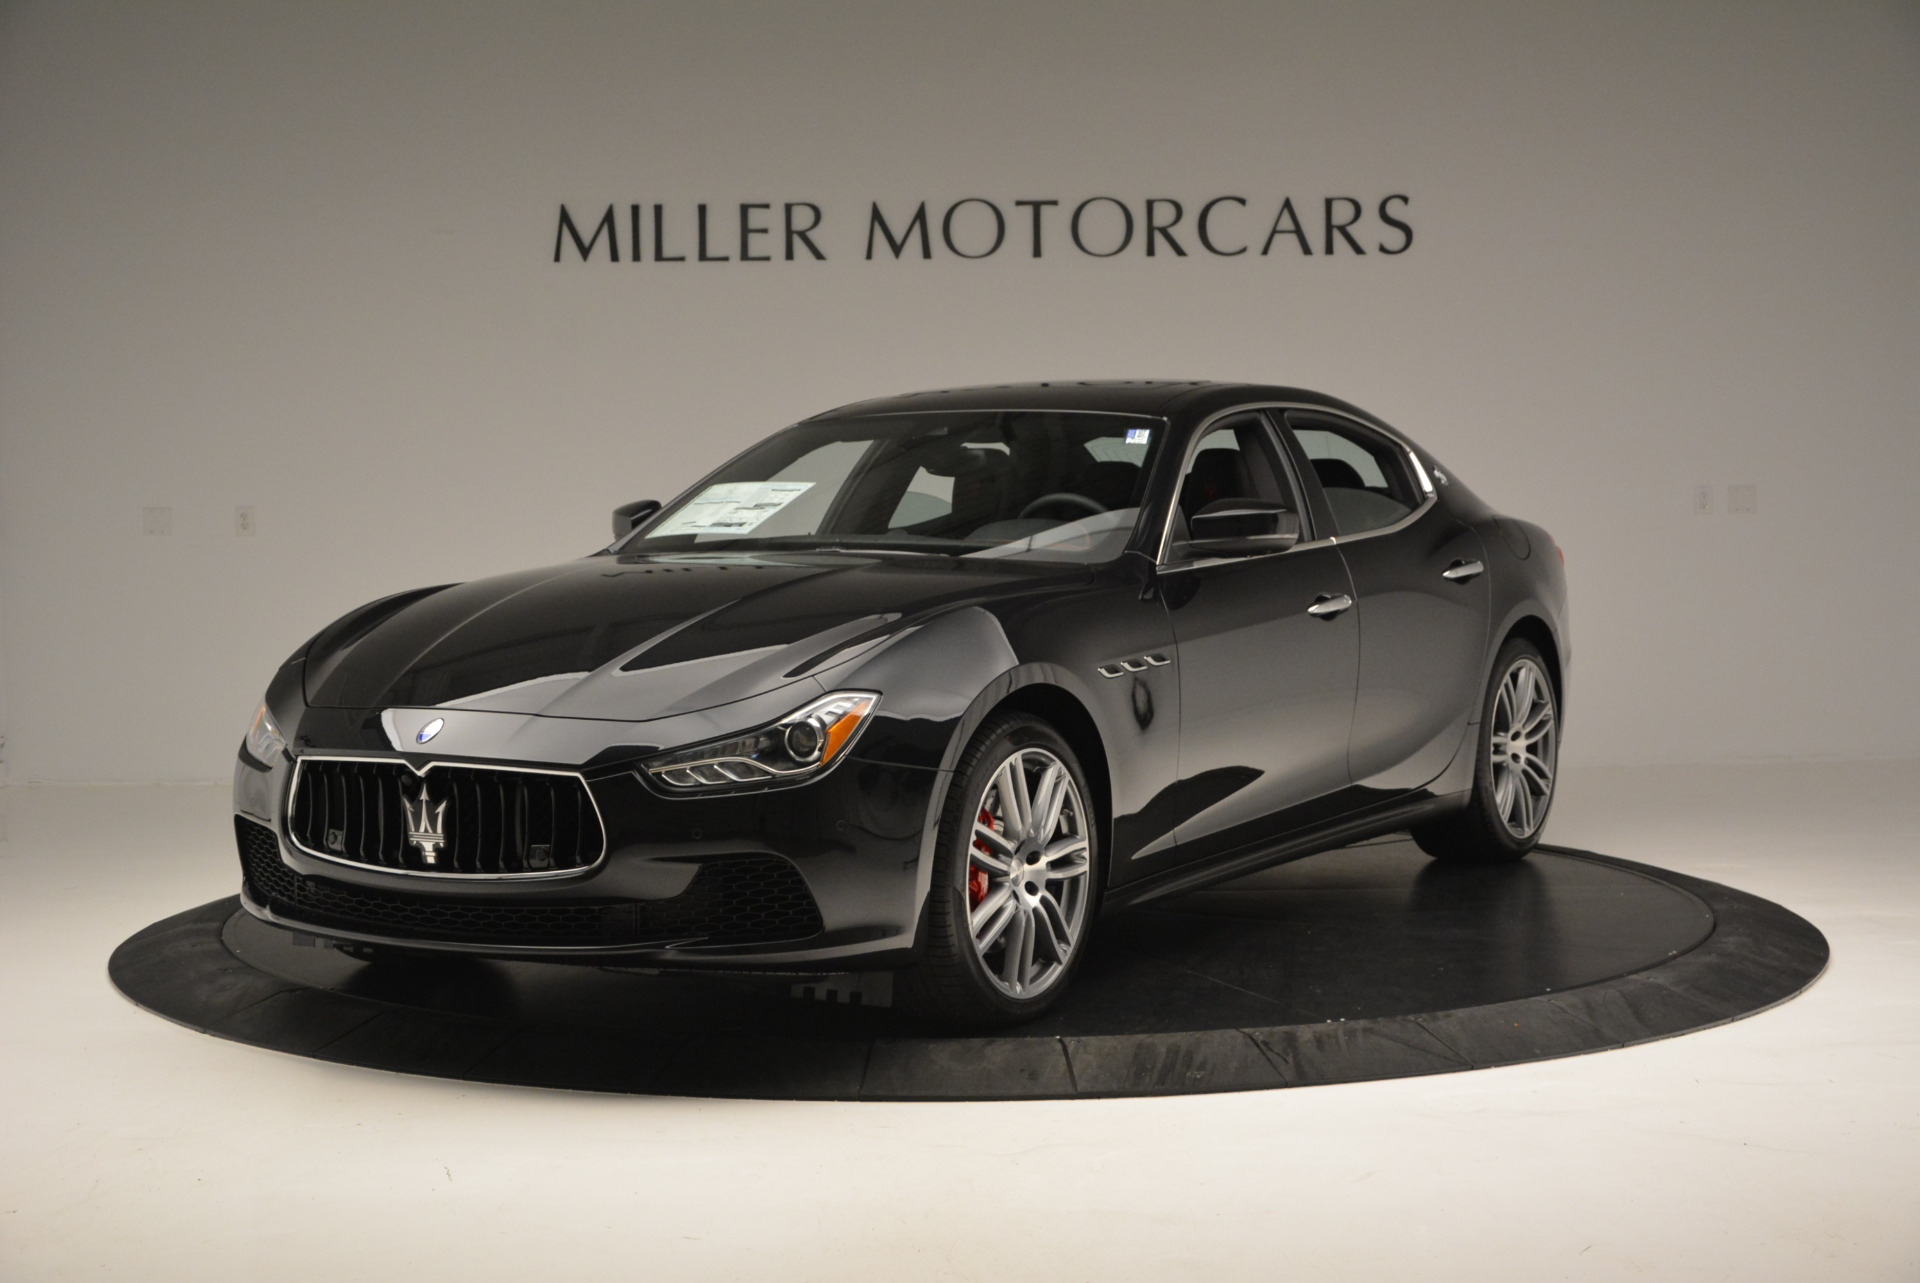 New 2017 Maserati Ghibli S Q4 For Sale In Westport, CT 630_main